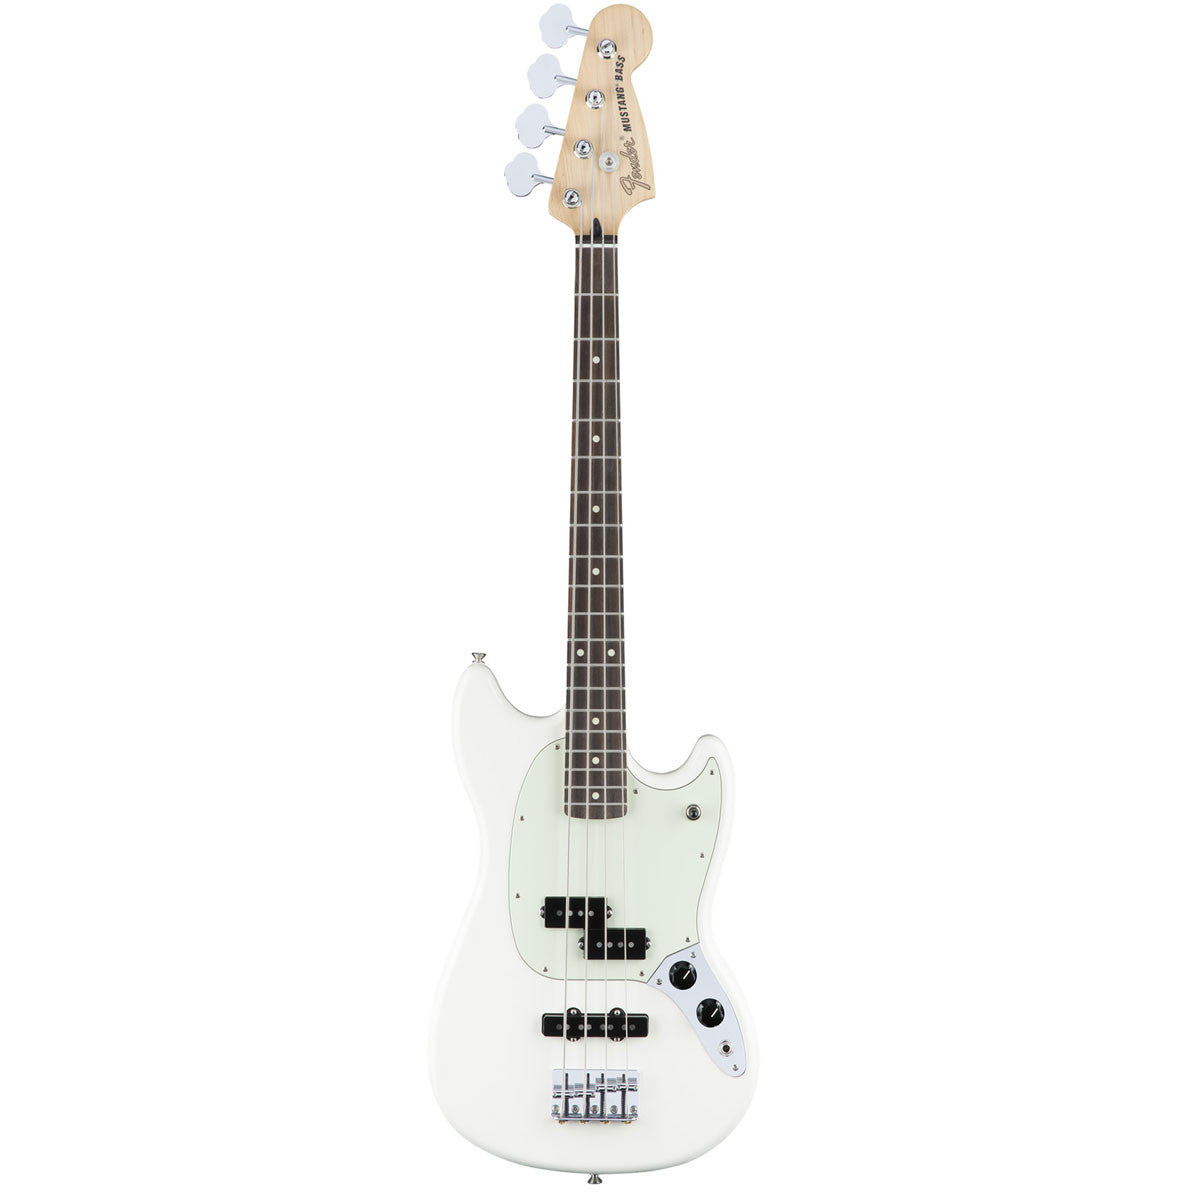 Fender Mustang Bass PJ - Rosewood - Olympic White - Vintage Guitar Boutique